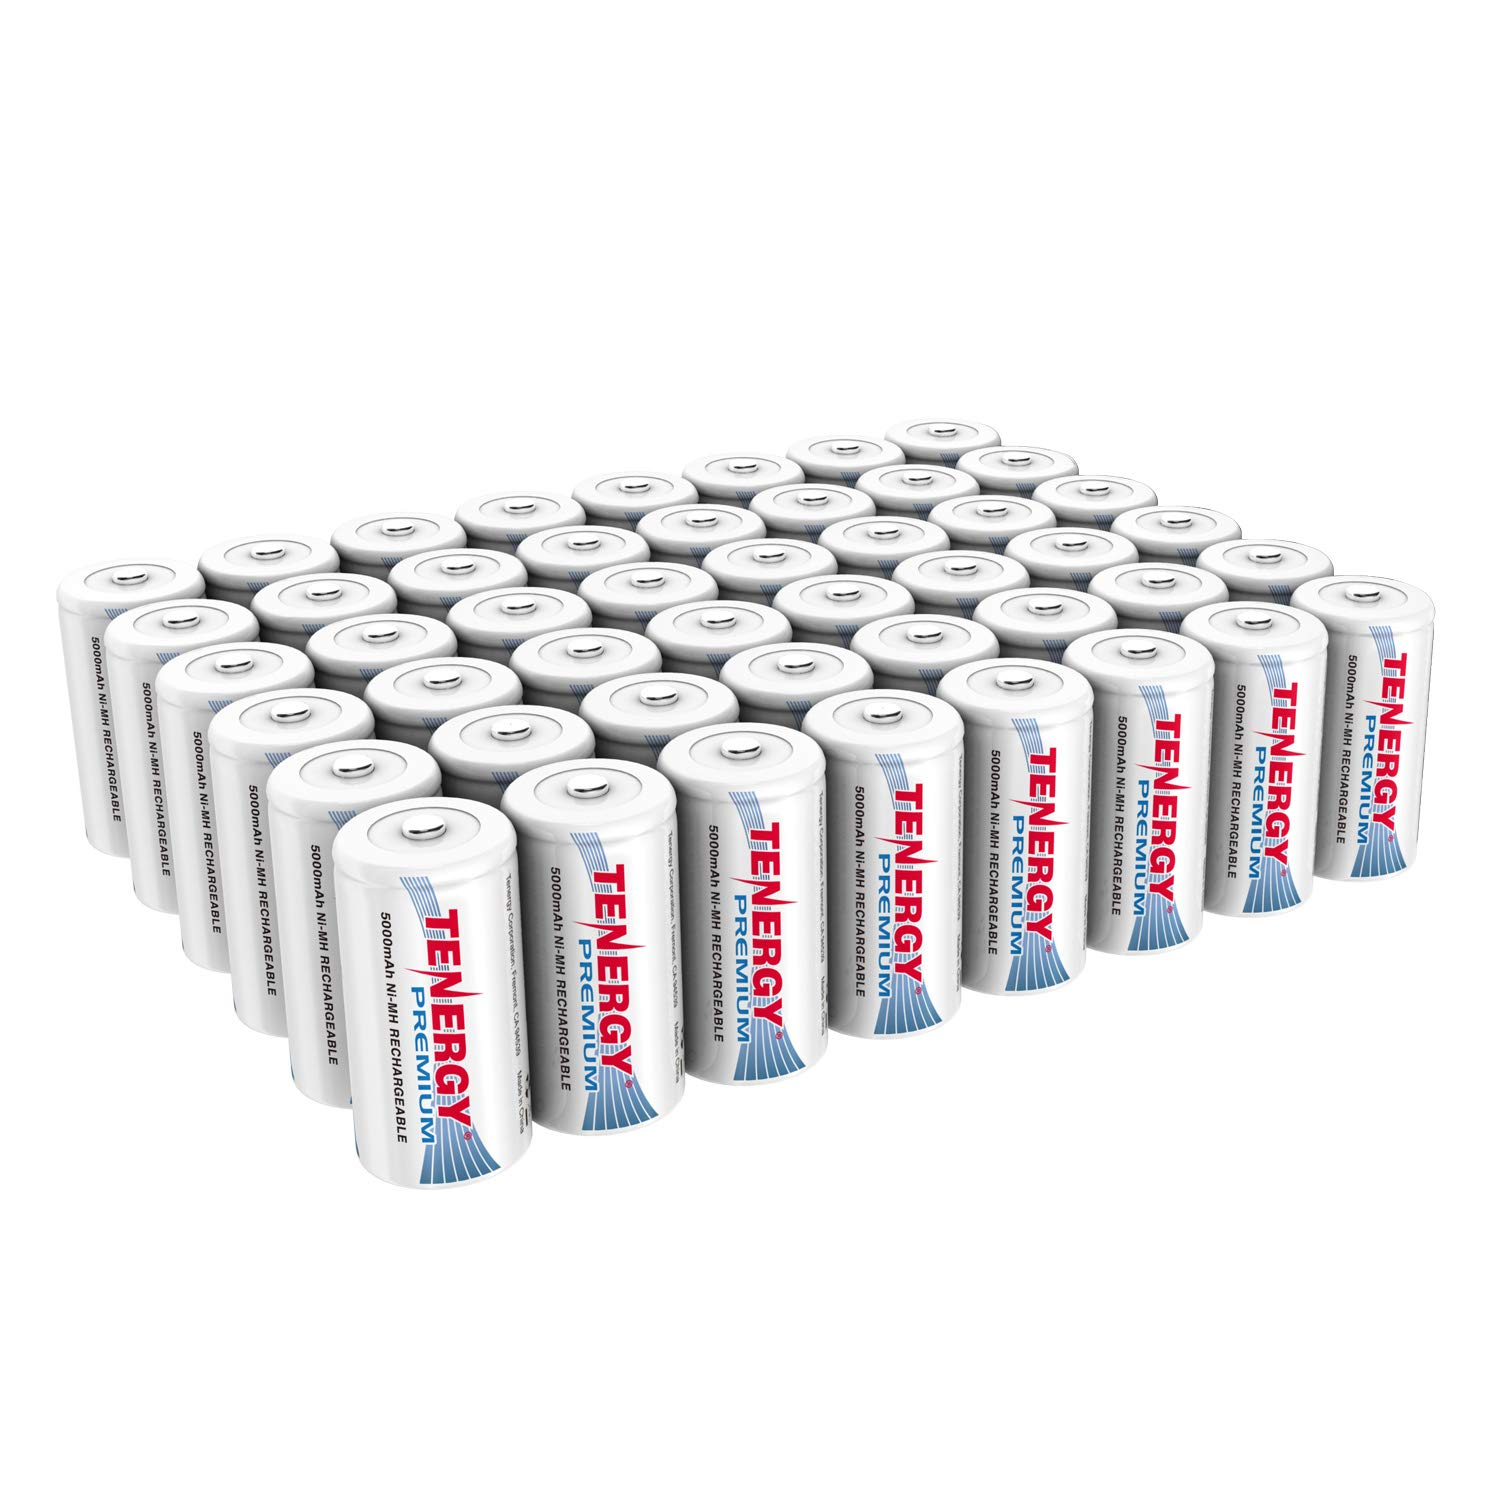 Tenergy Premium Rechargeable C Batteries, High Capacity 5000mAh NiMH C Size Battery, C Cell Battery, 48-Pack by Tenergy